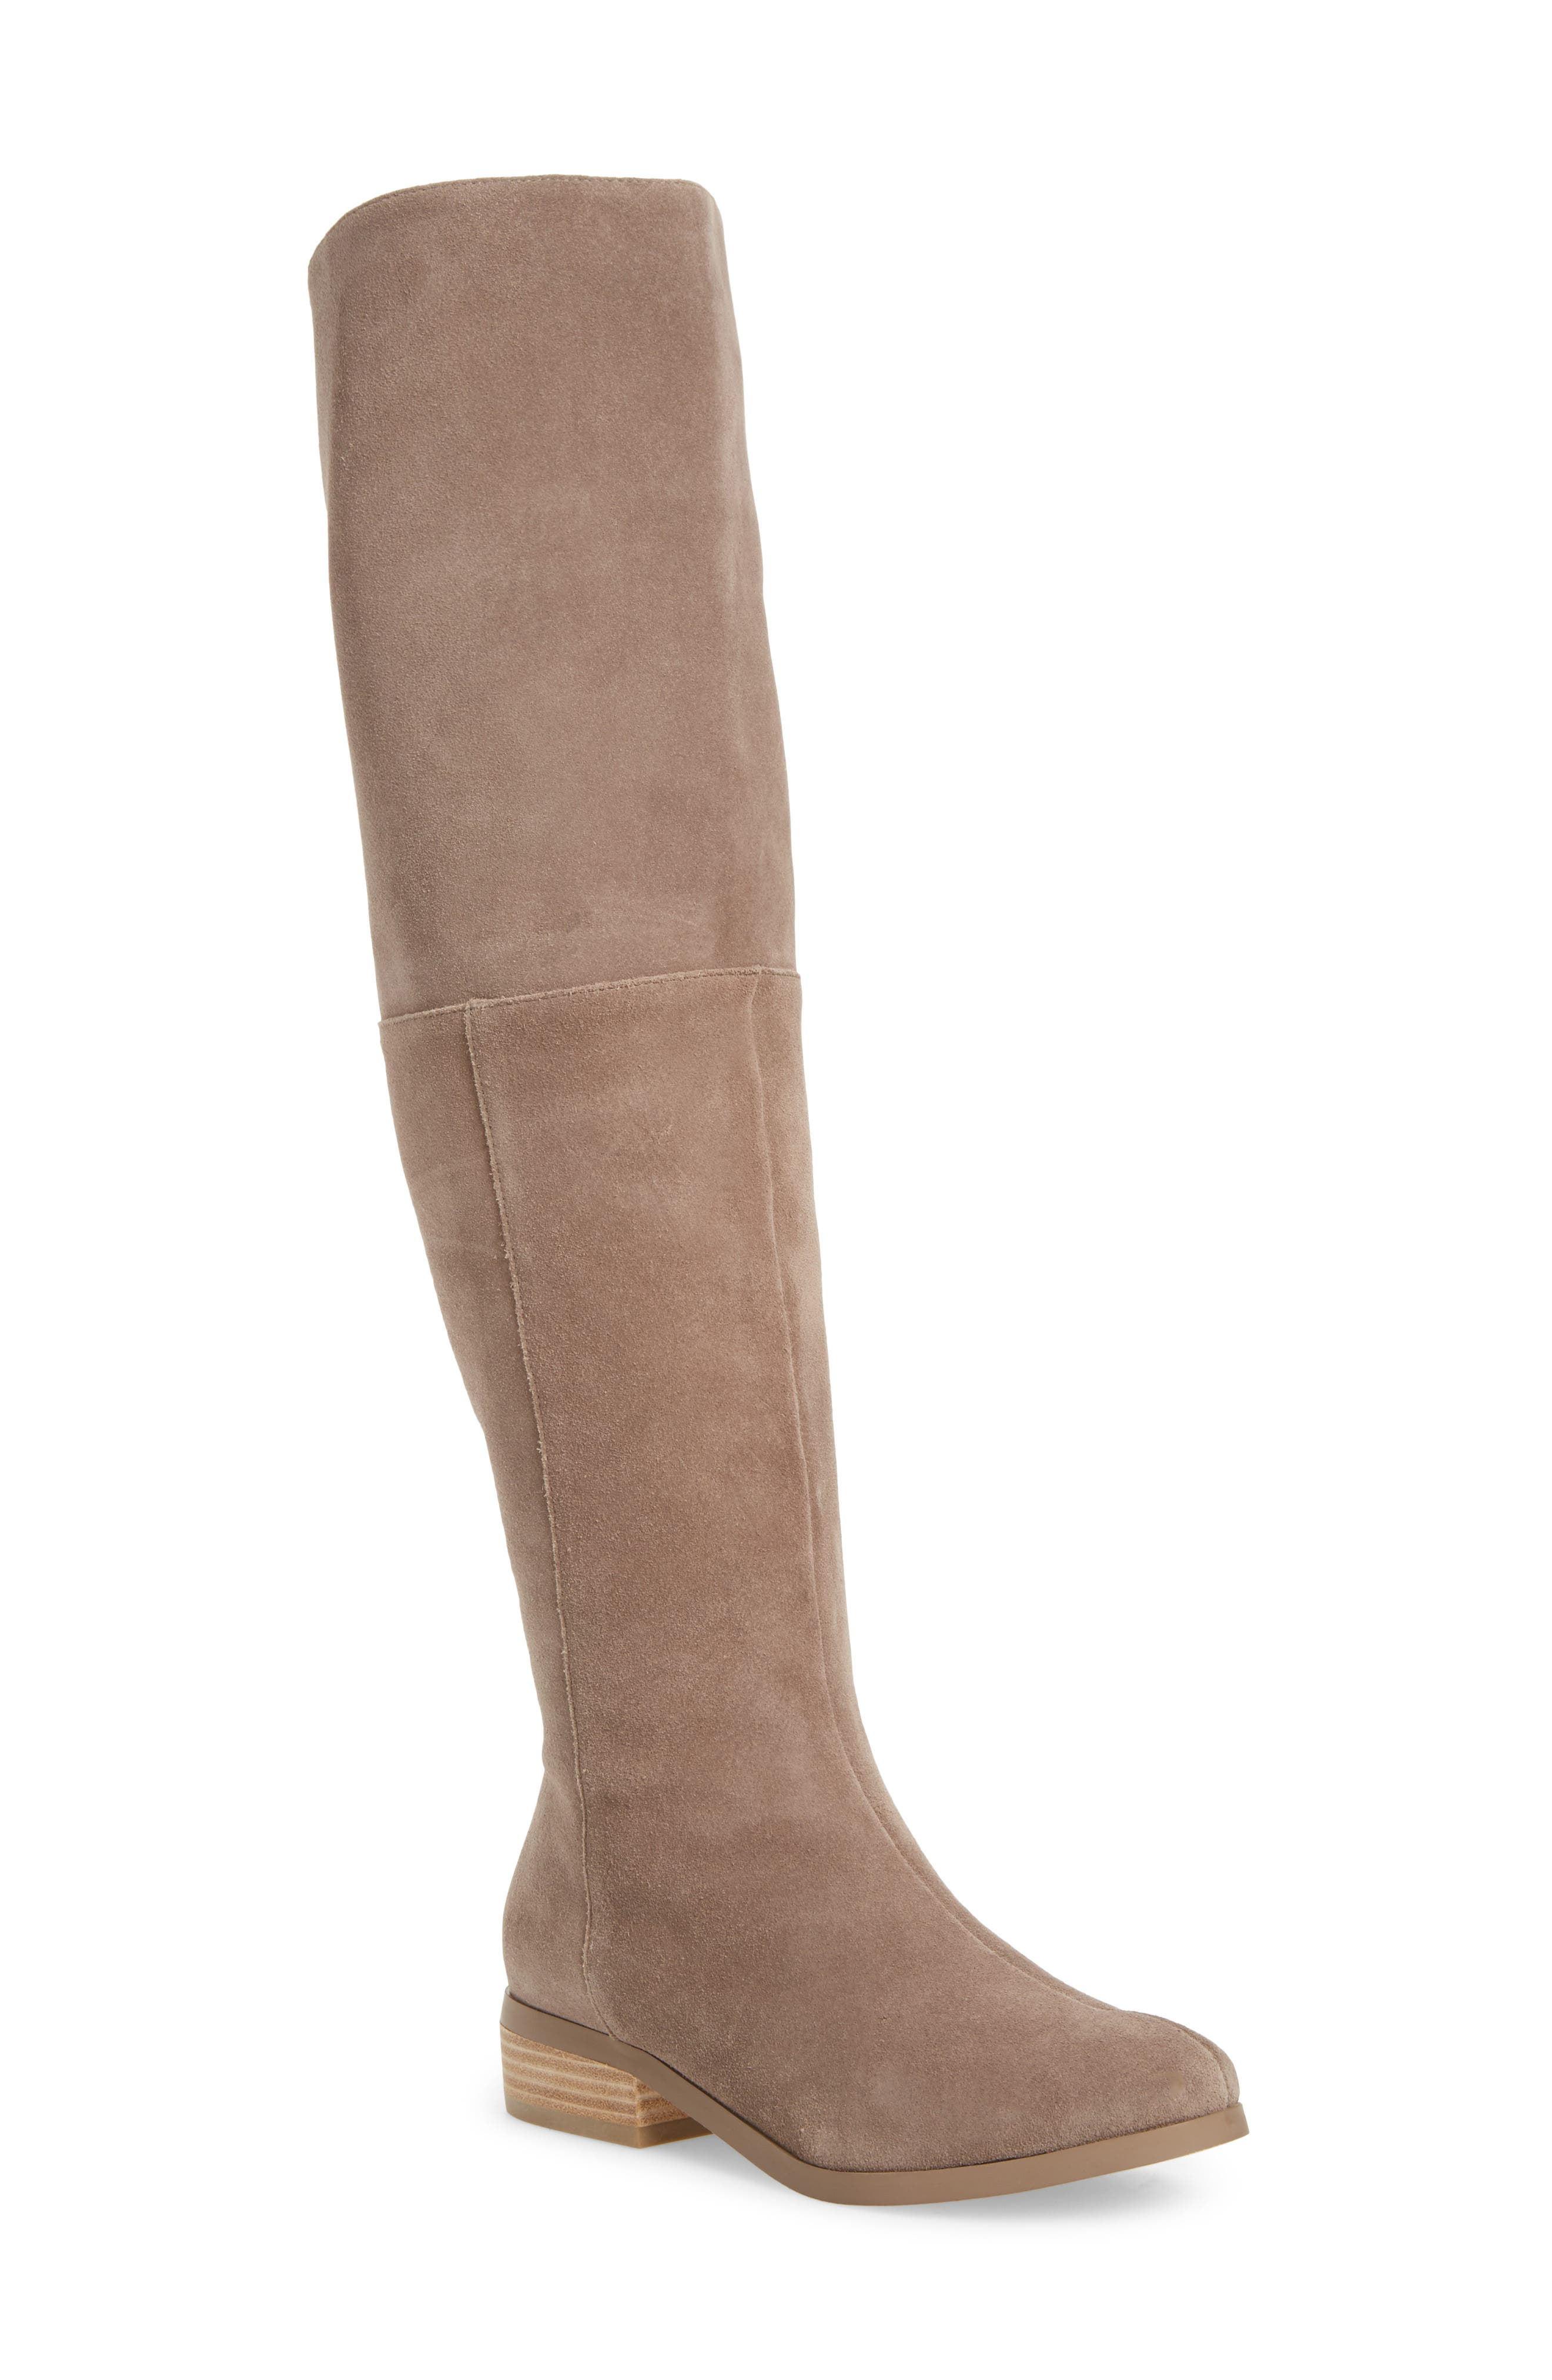 Sonoma Over the Knee Boot, Main, color, 030